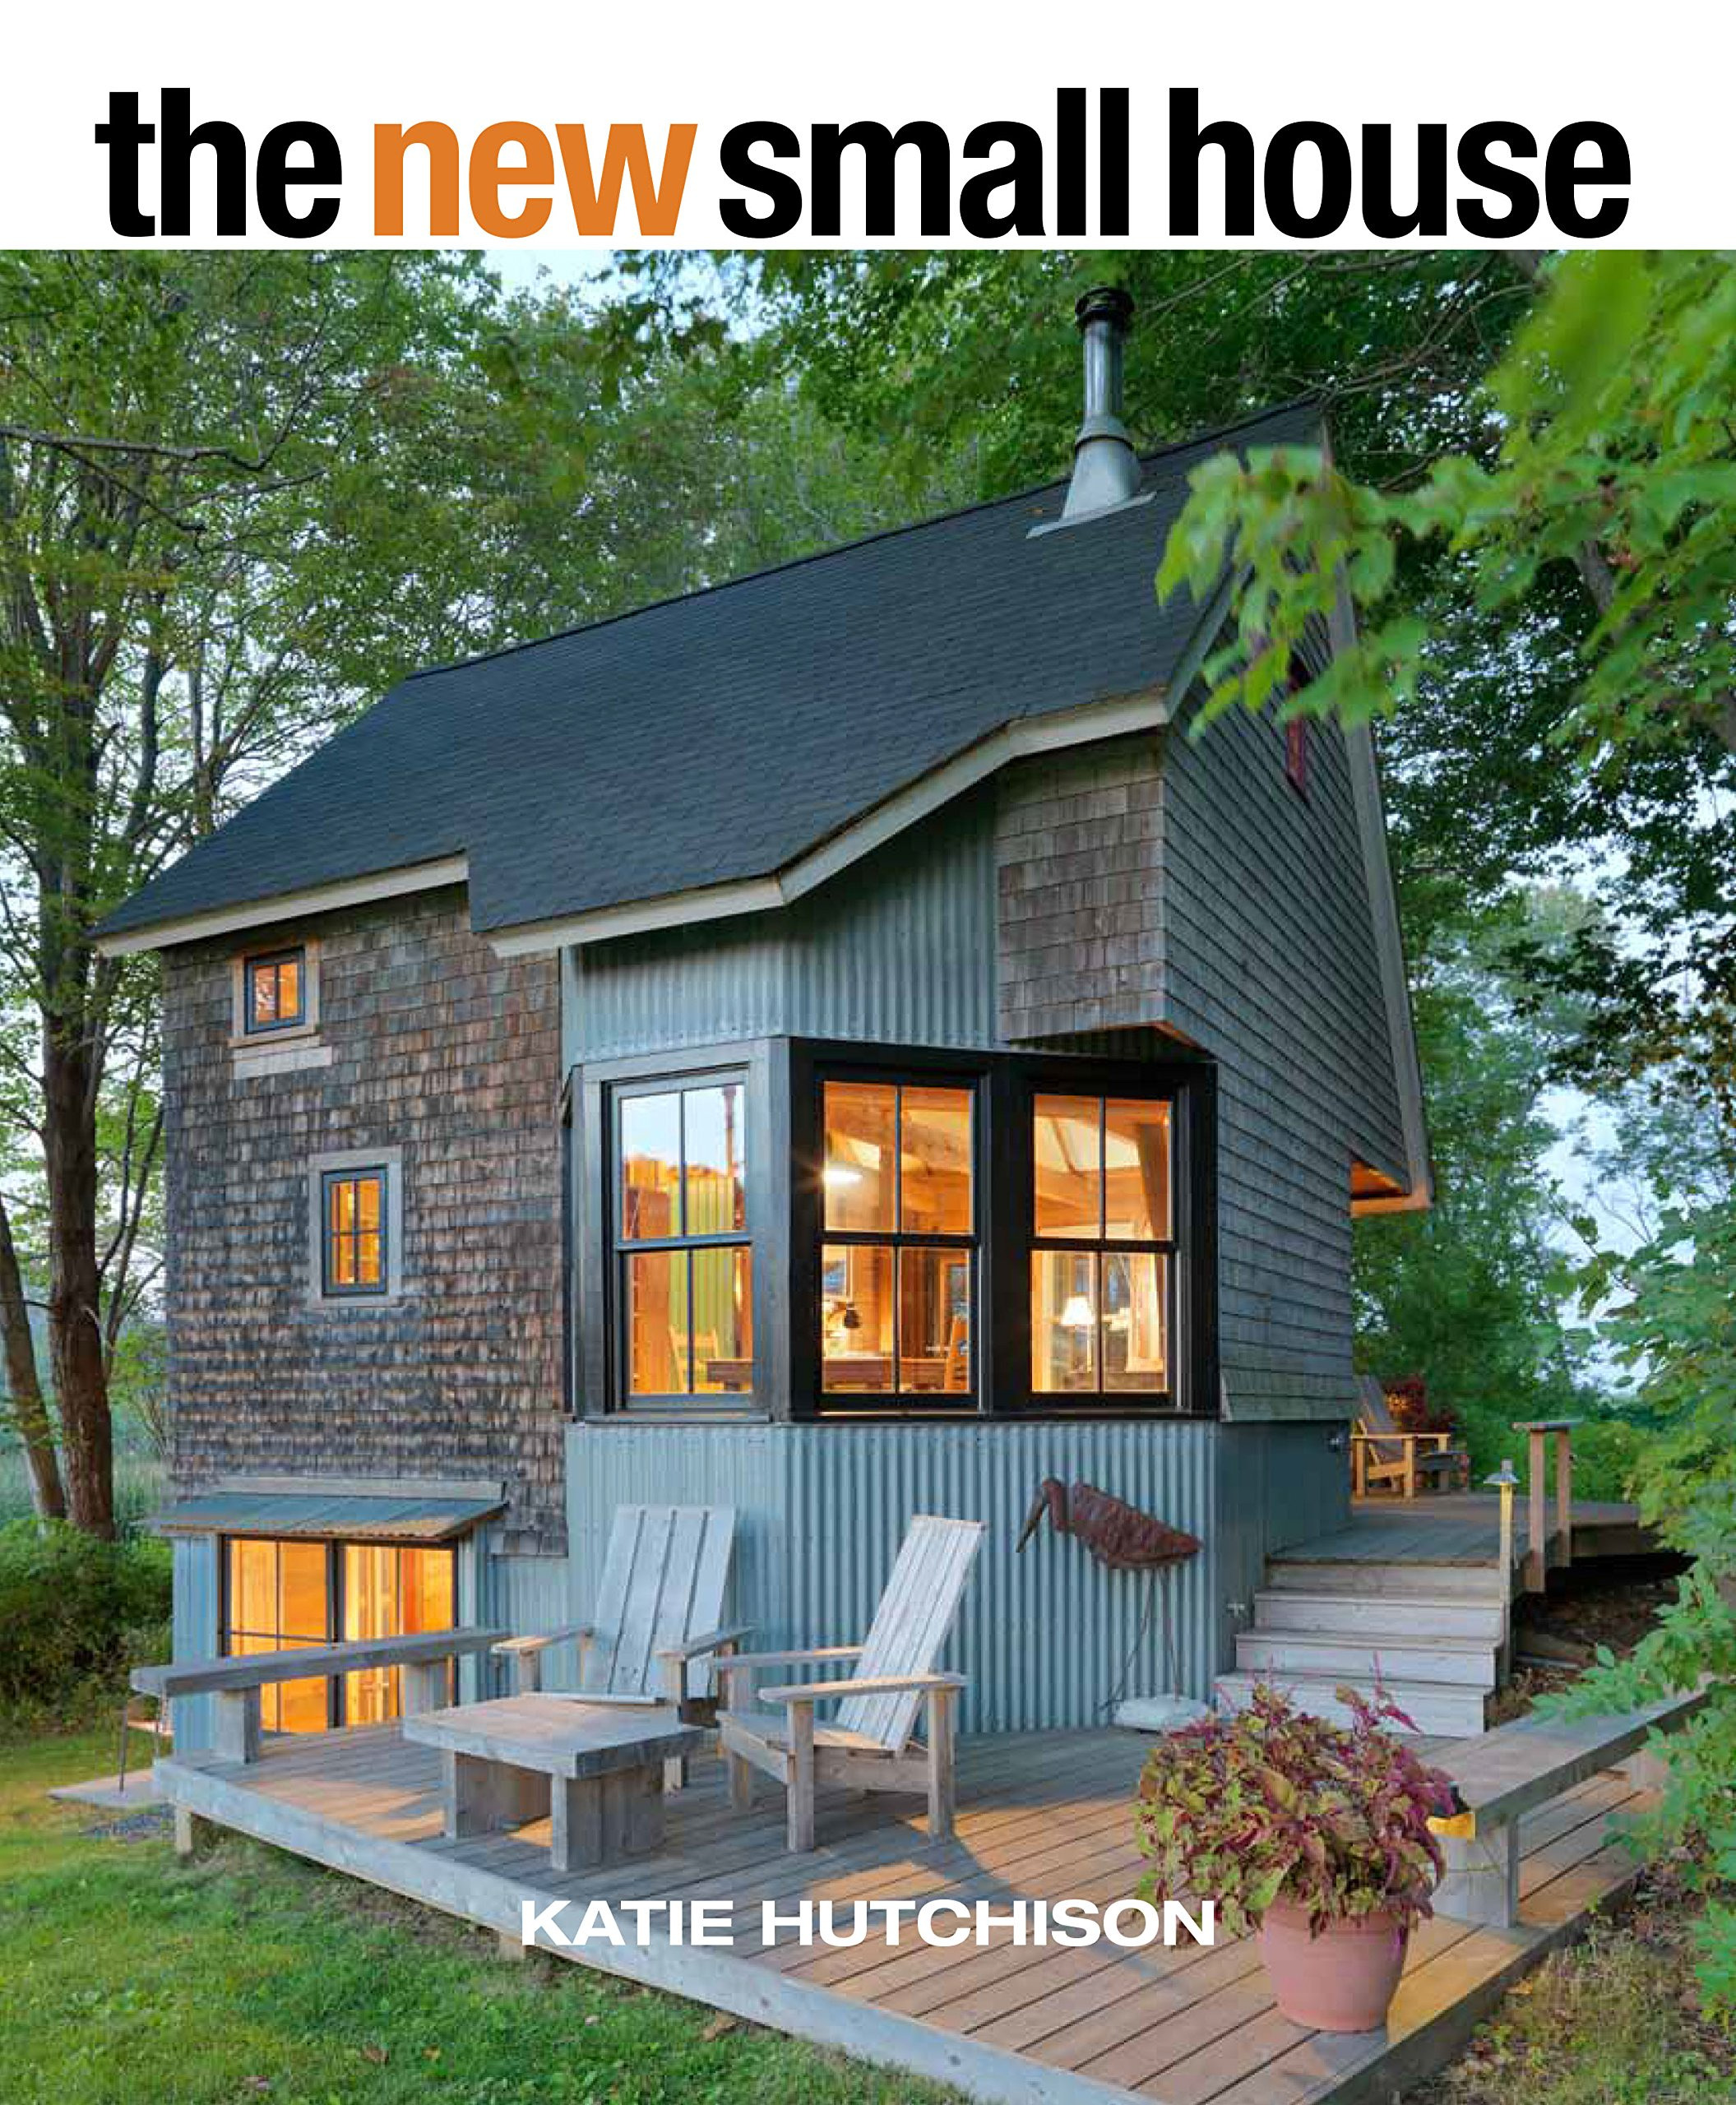 Best Small House Architecture Beautiful the New Small House Amazon Katie Hutchison